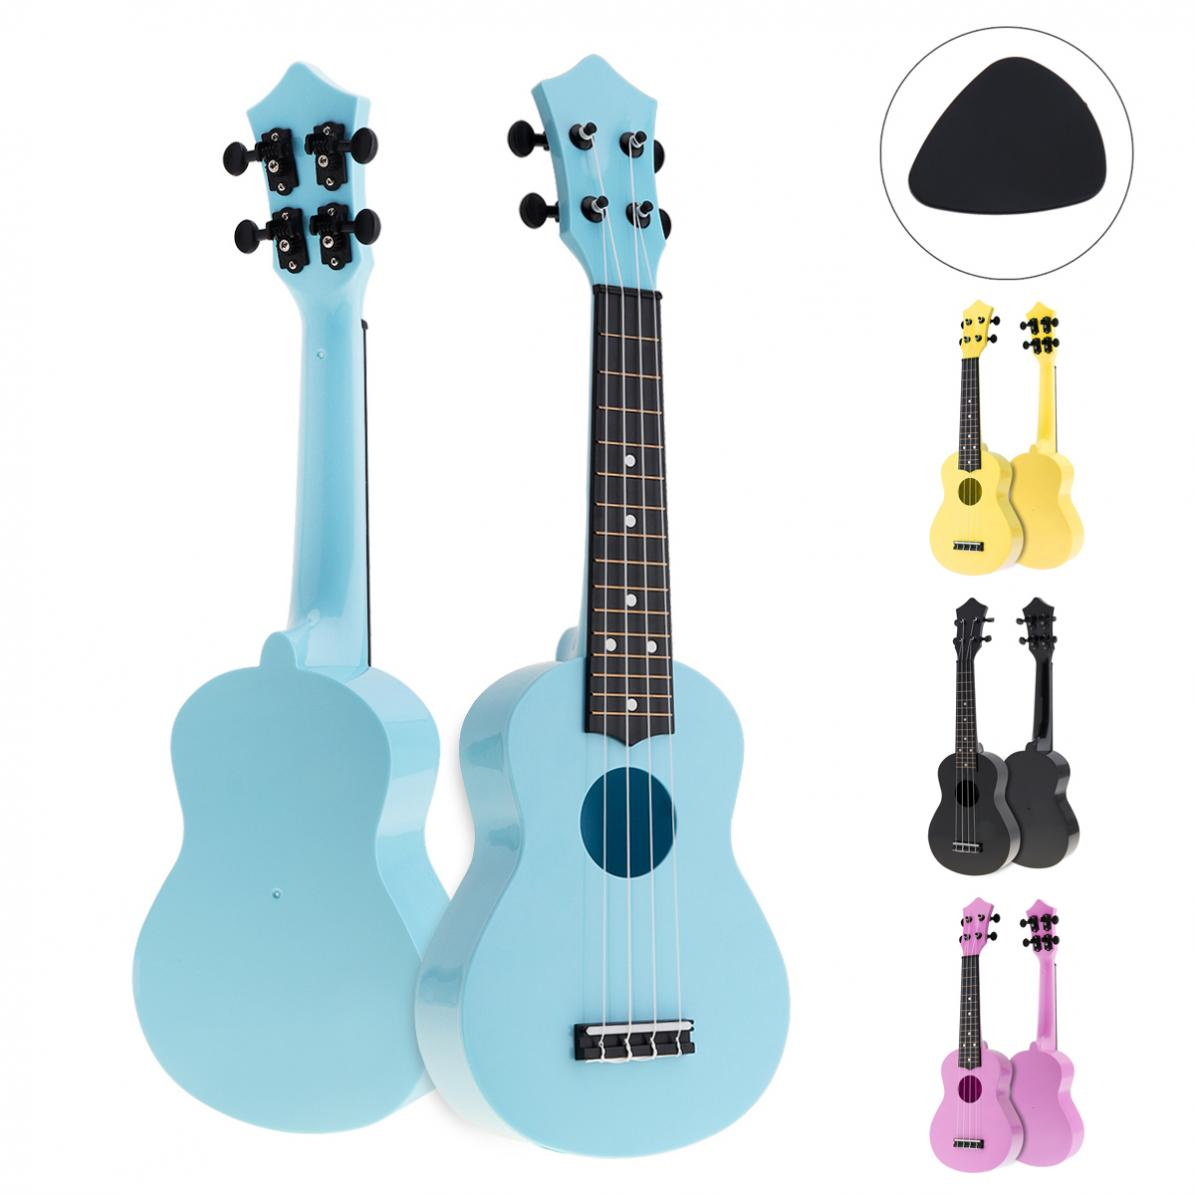 Guitar Ukulele Musica-Instrument Acoustic Hawaii 4-Strings Colorful Kids Uke 21inch